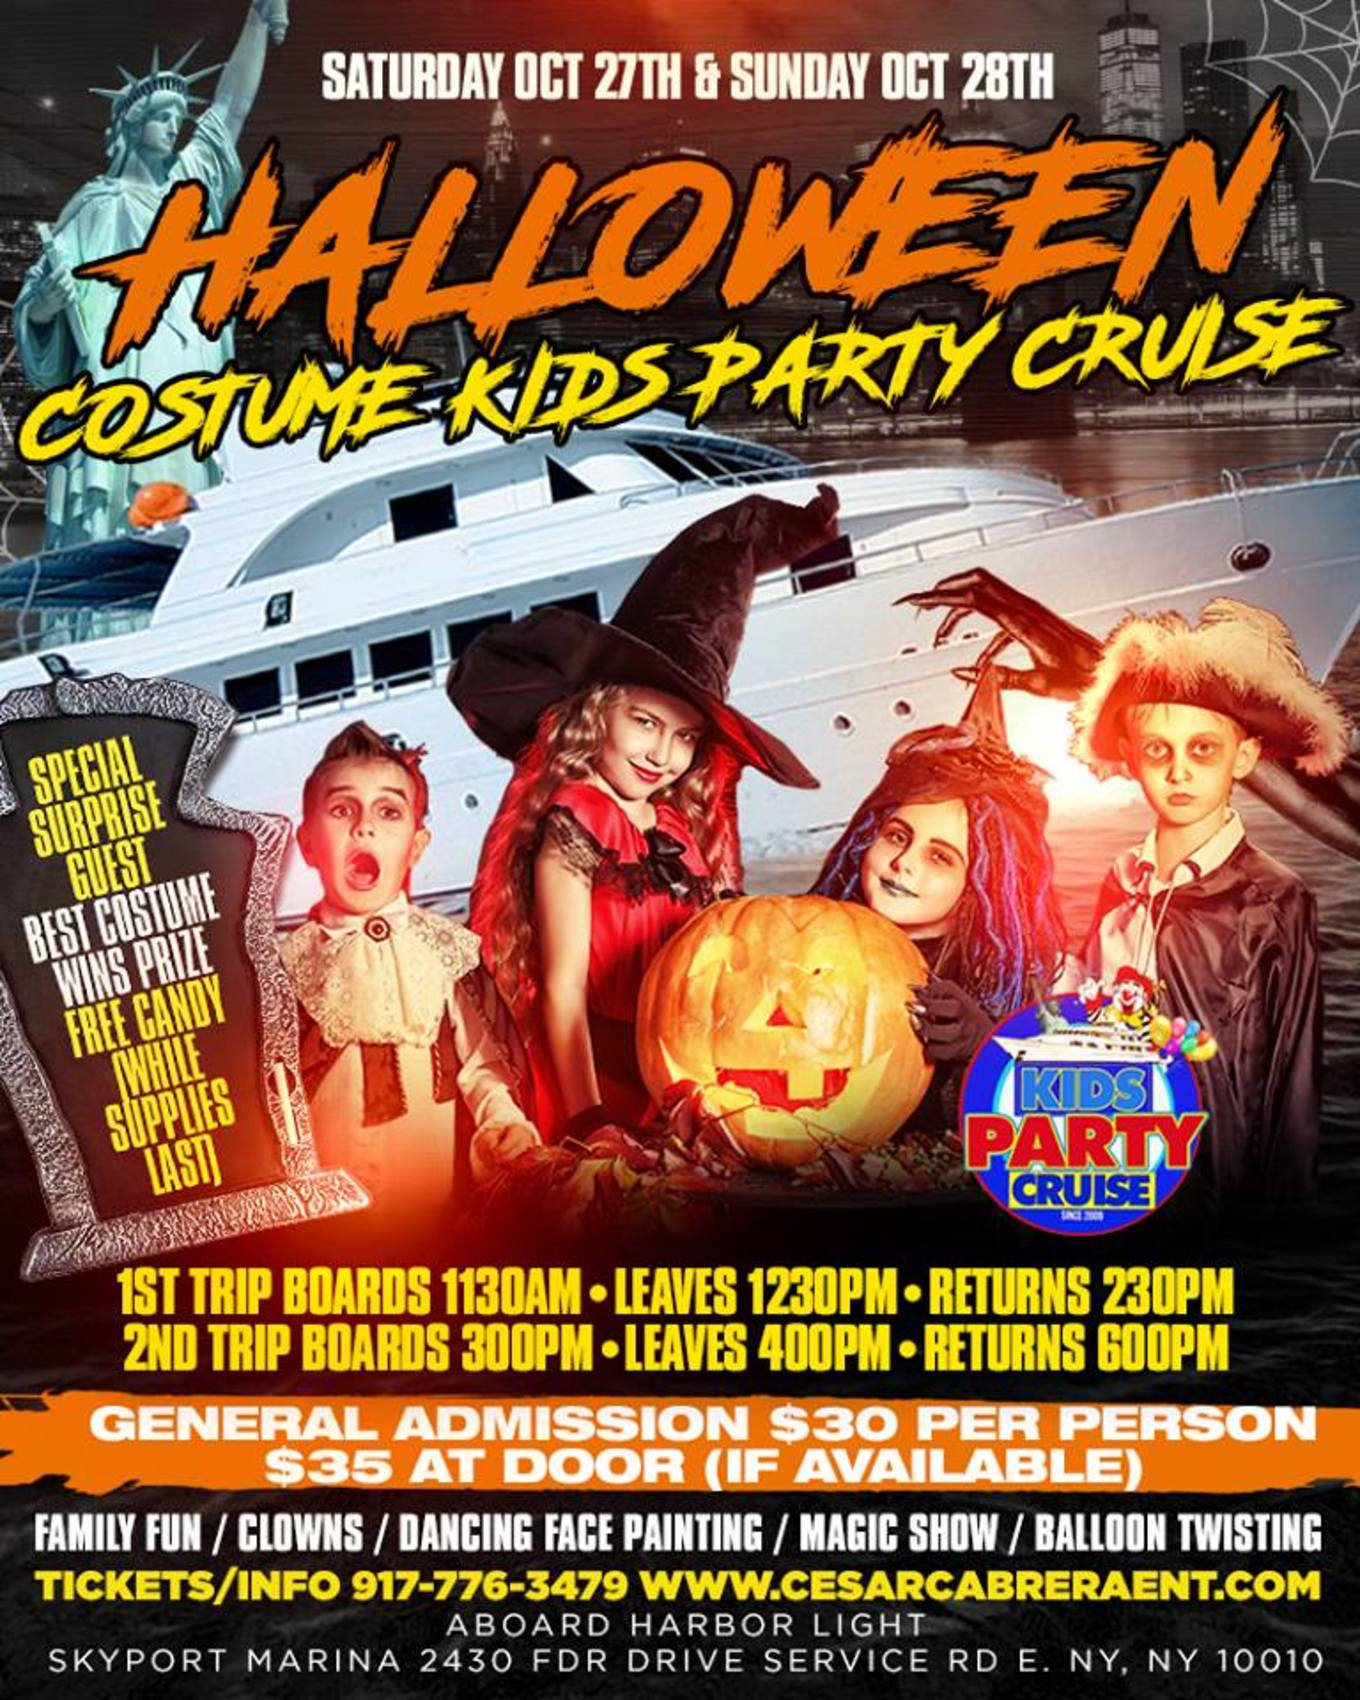 d547763c9 Halloween Costume Kids Party Cruise (3:00pm-6:00pm) - Tickets - Skyport  Marina, New York, NY - October 27, 2018